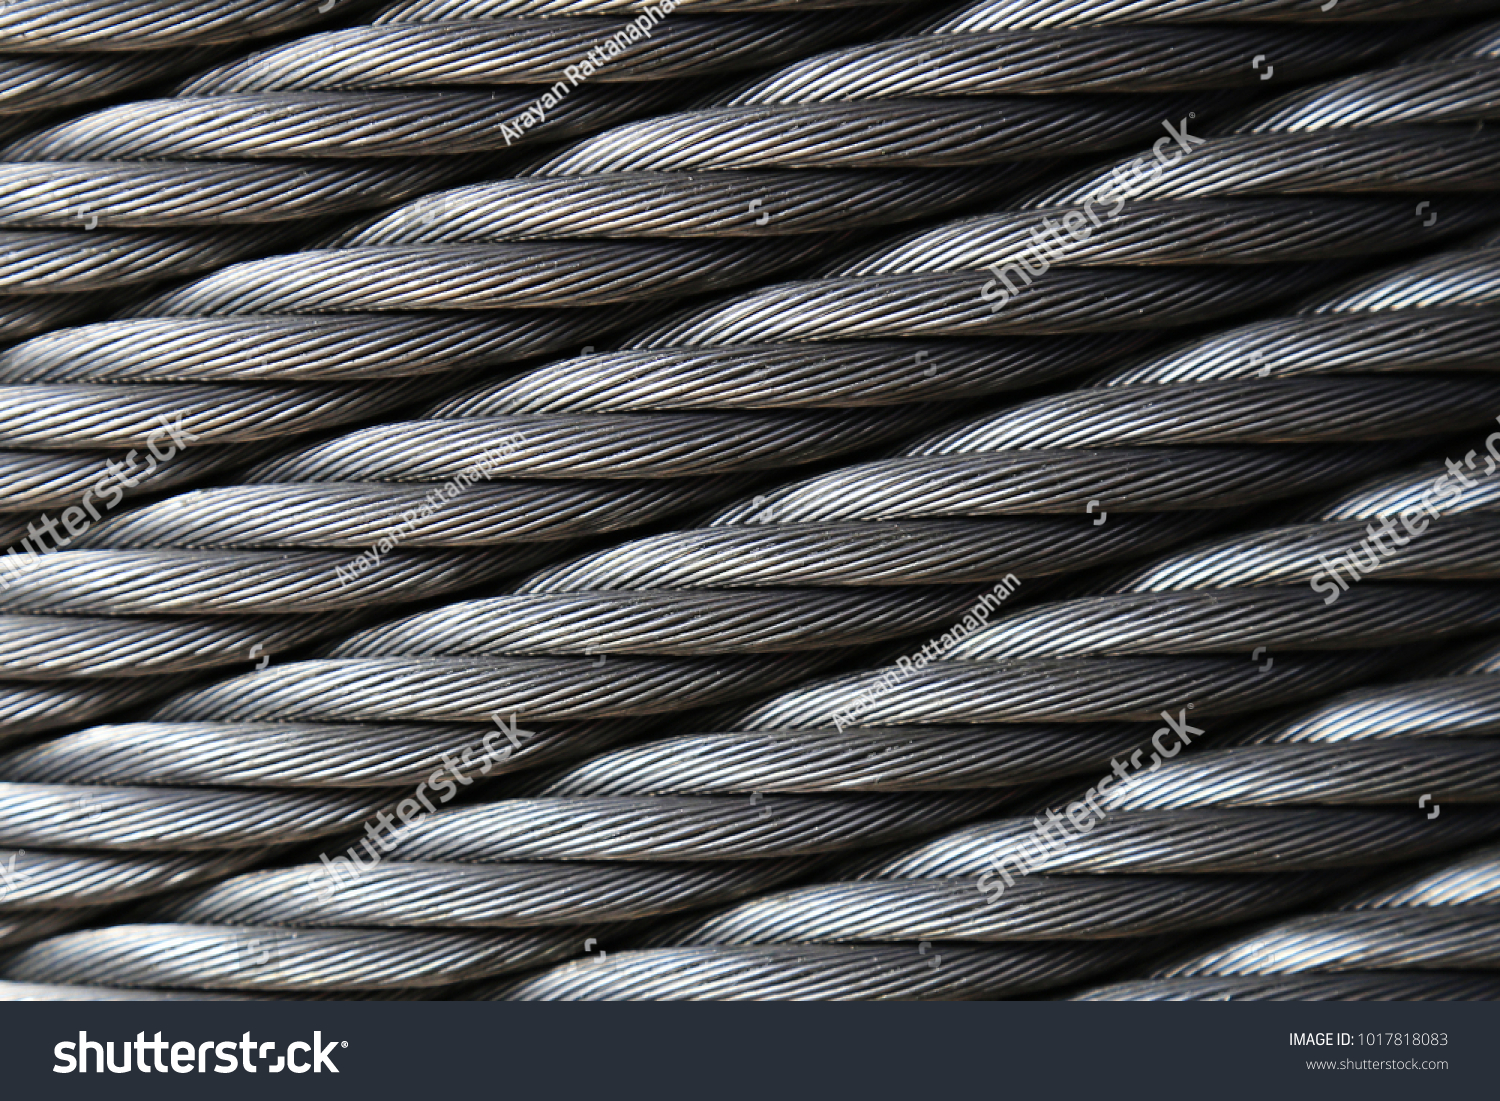 Closeup Heavy Duty New Steel Cable Texture Stock Photo (Edit Now ...